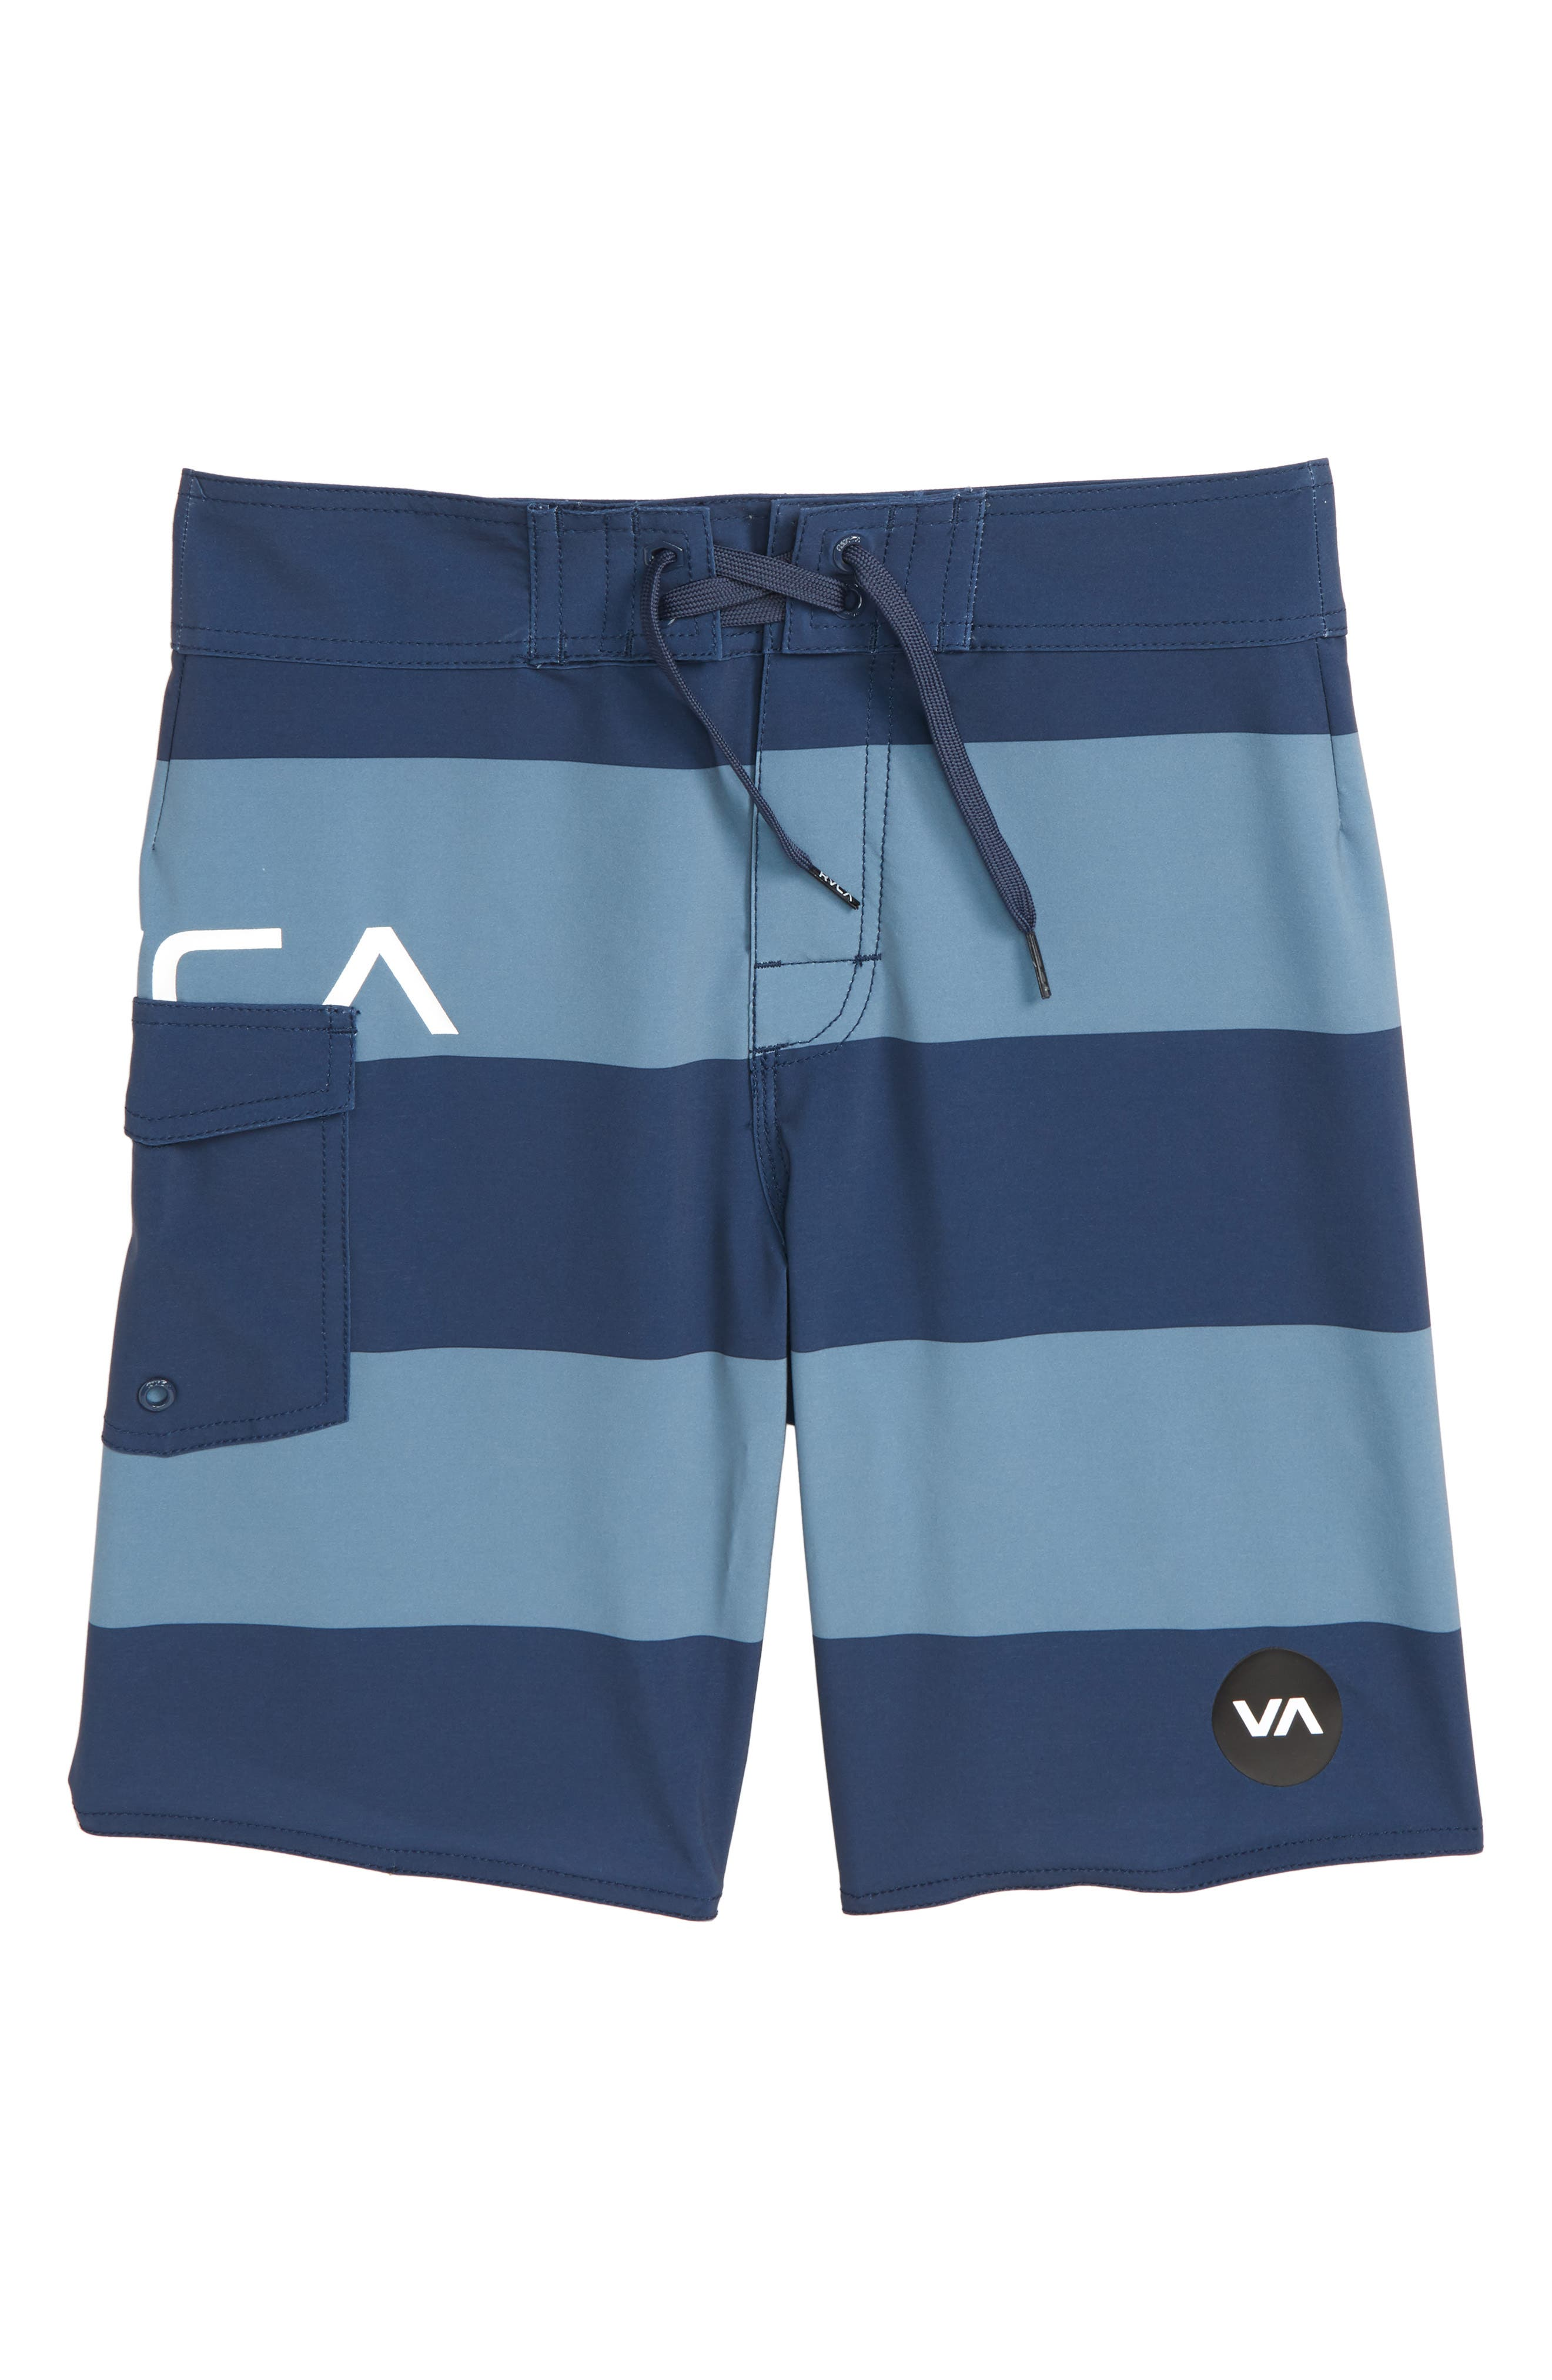 RVCA Uncivil Stripe Board Shorts (Big Boys)